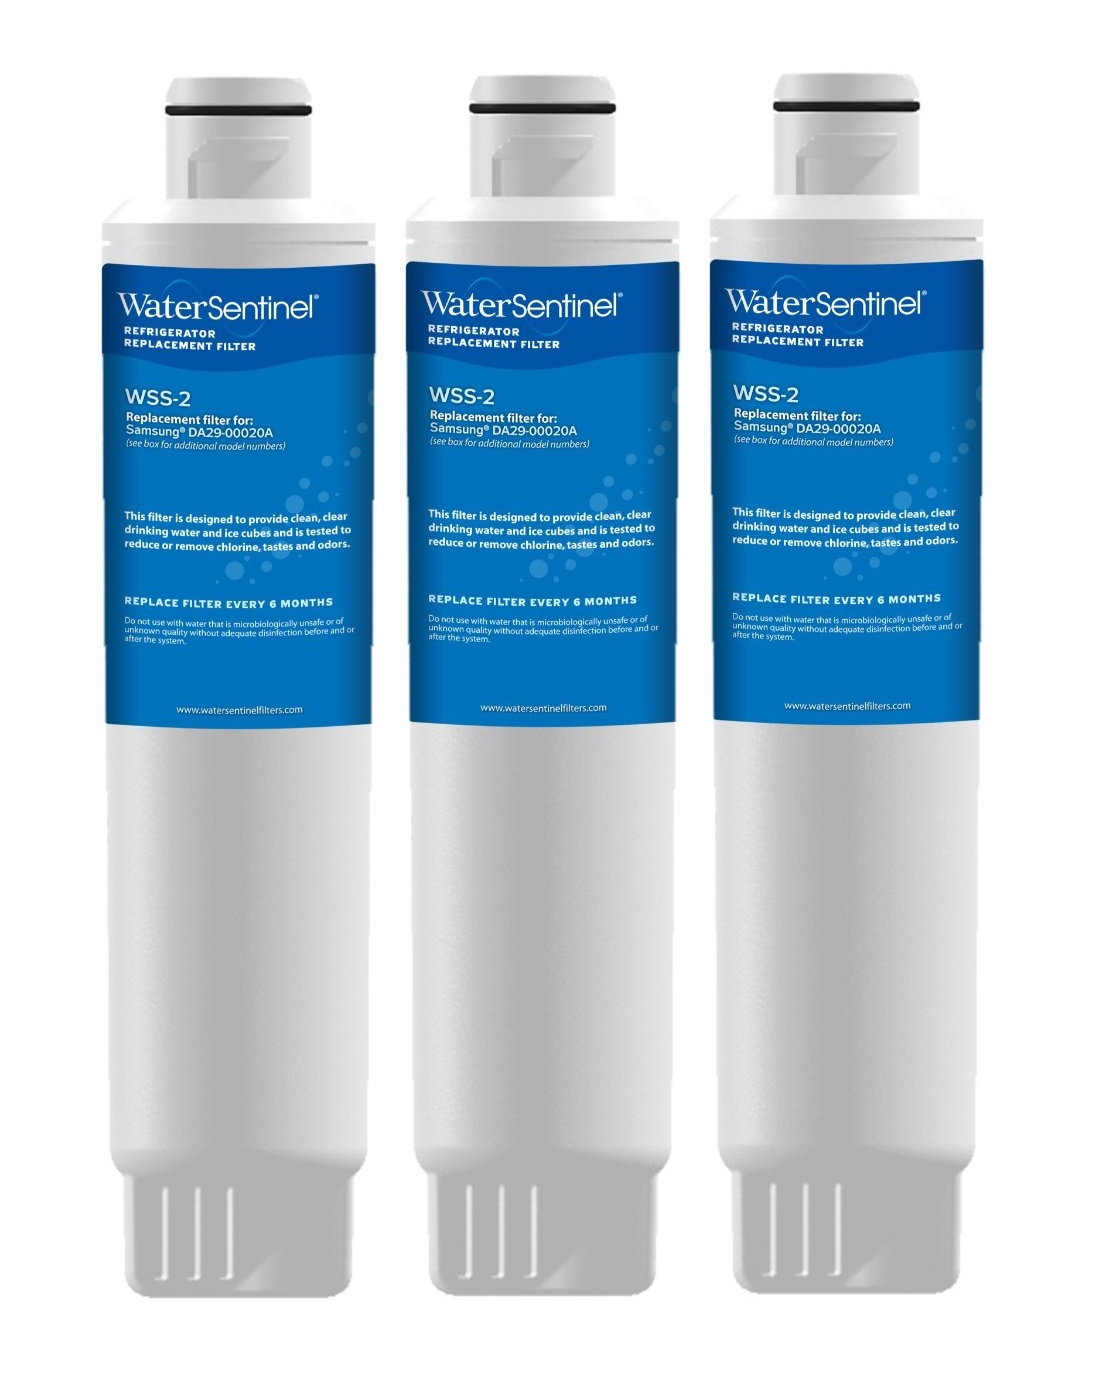 WSS-2 Water Sentinel Refrigerator Water Filter (3-Pack)